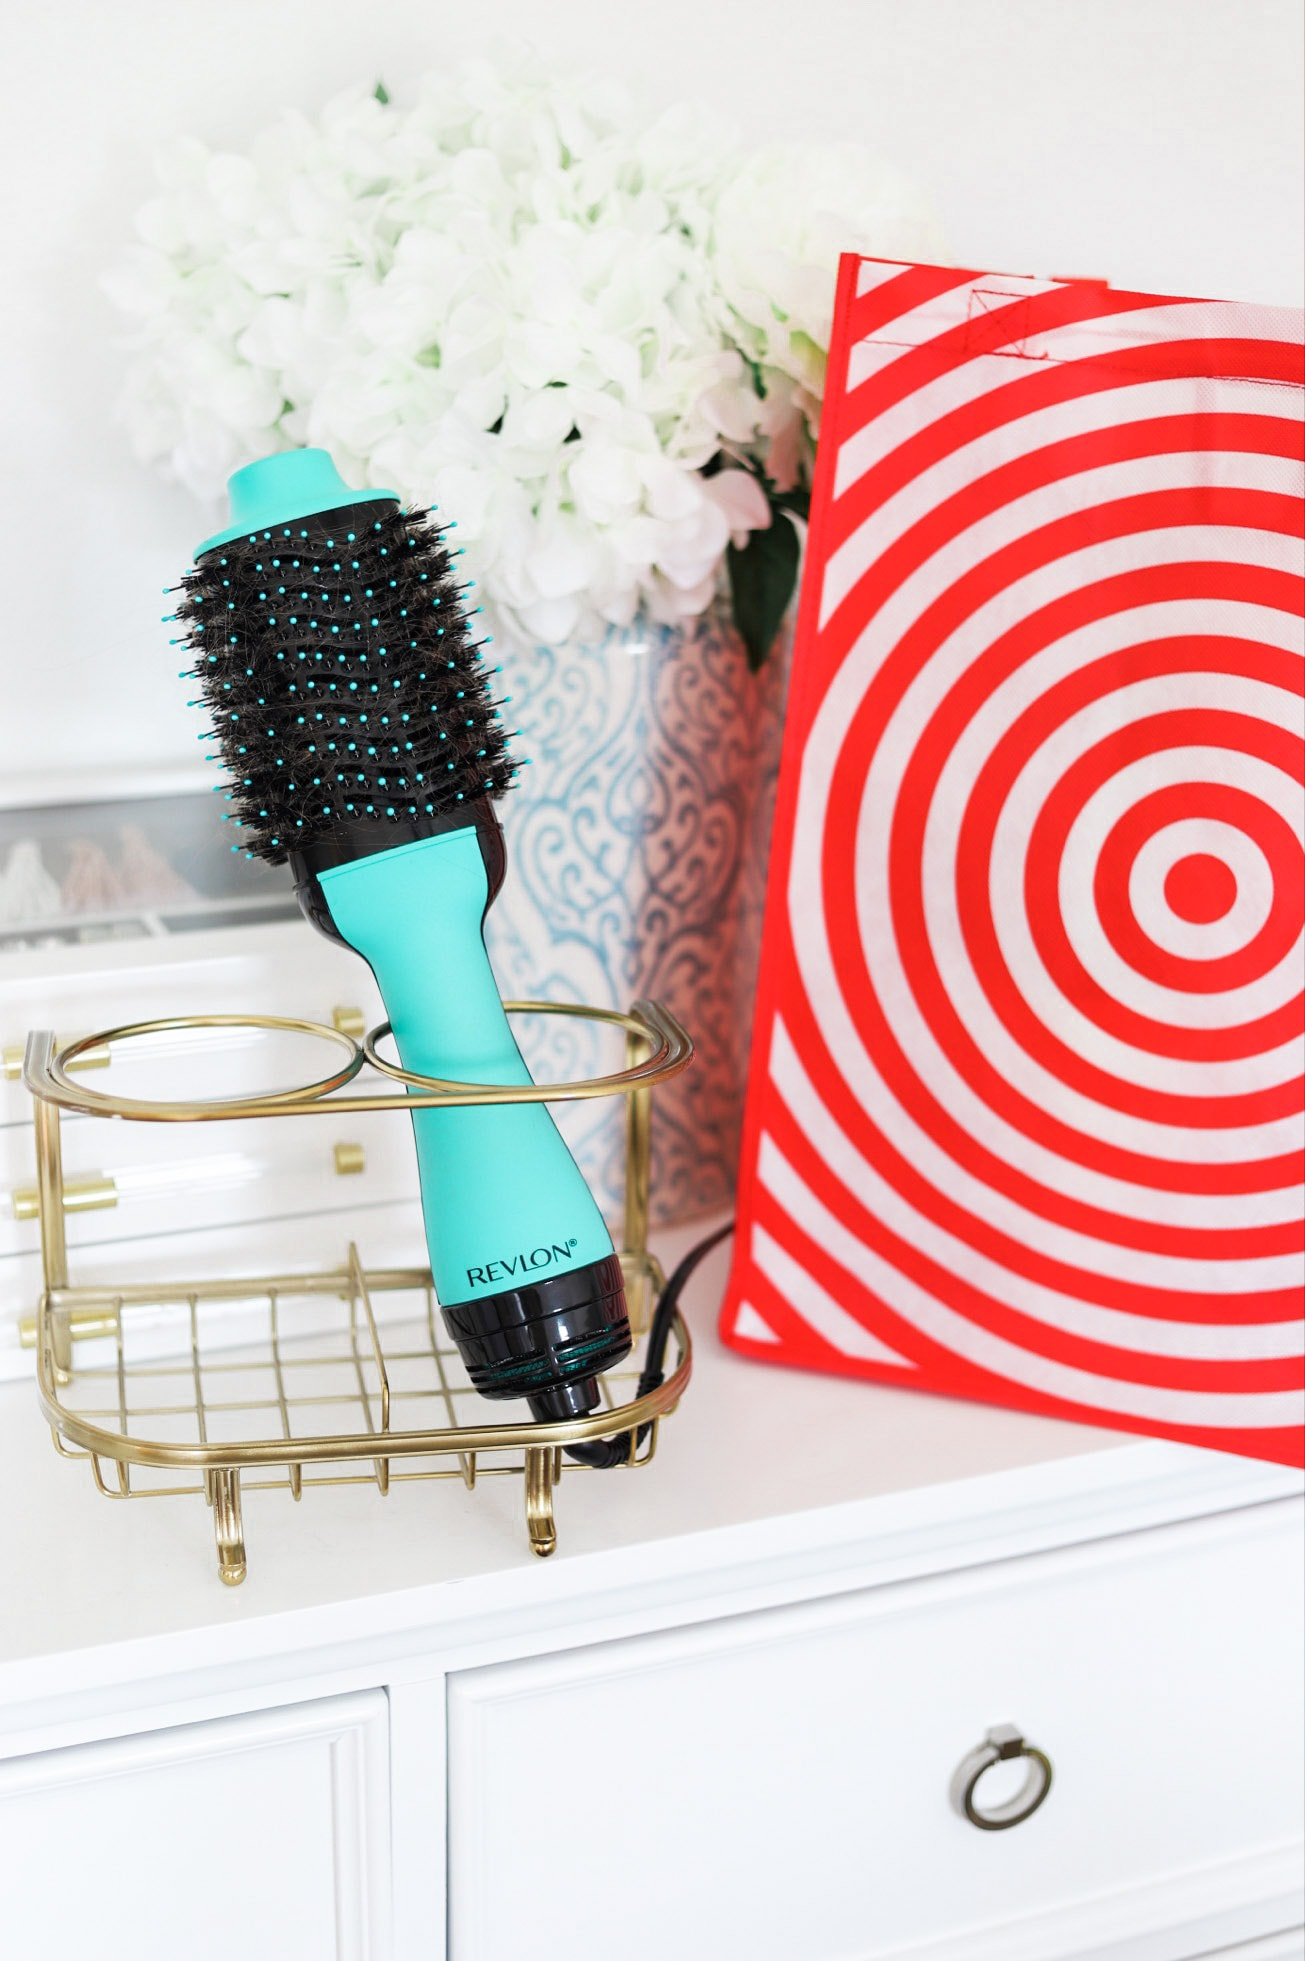 How to get a salon-quality blowout at home with the Revlon One-Step Volumizer and Hair Dryer in Orlando, Florida beauty blogger's easy step-by-step video tutorial. Get the new teal color at Target